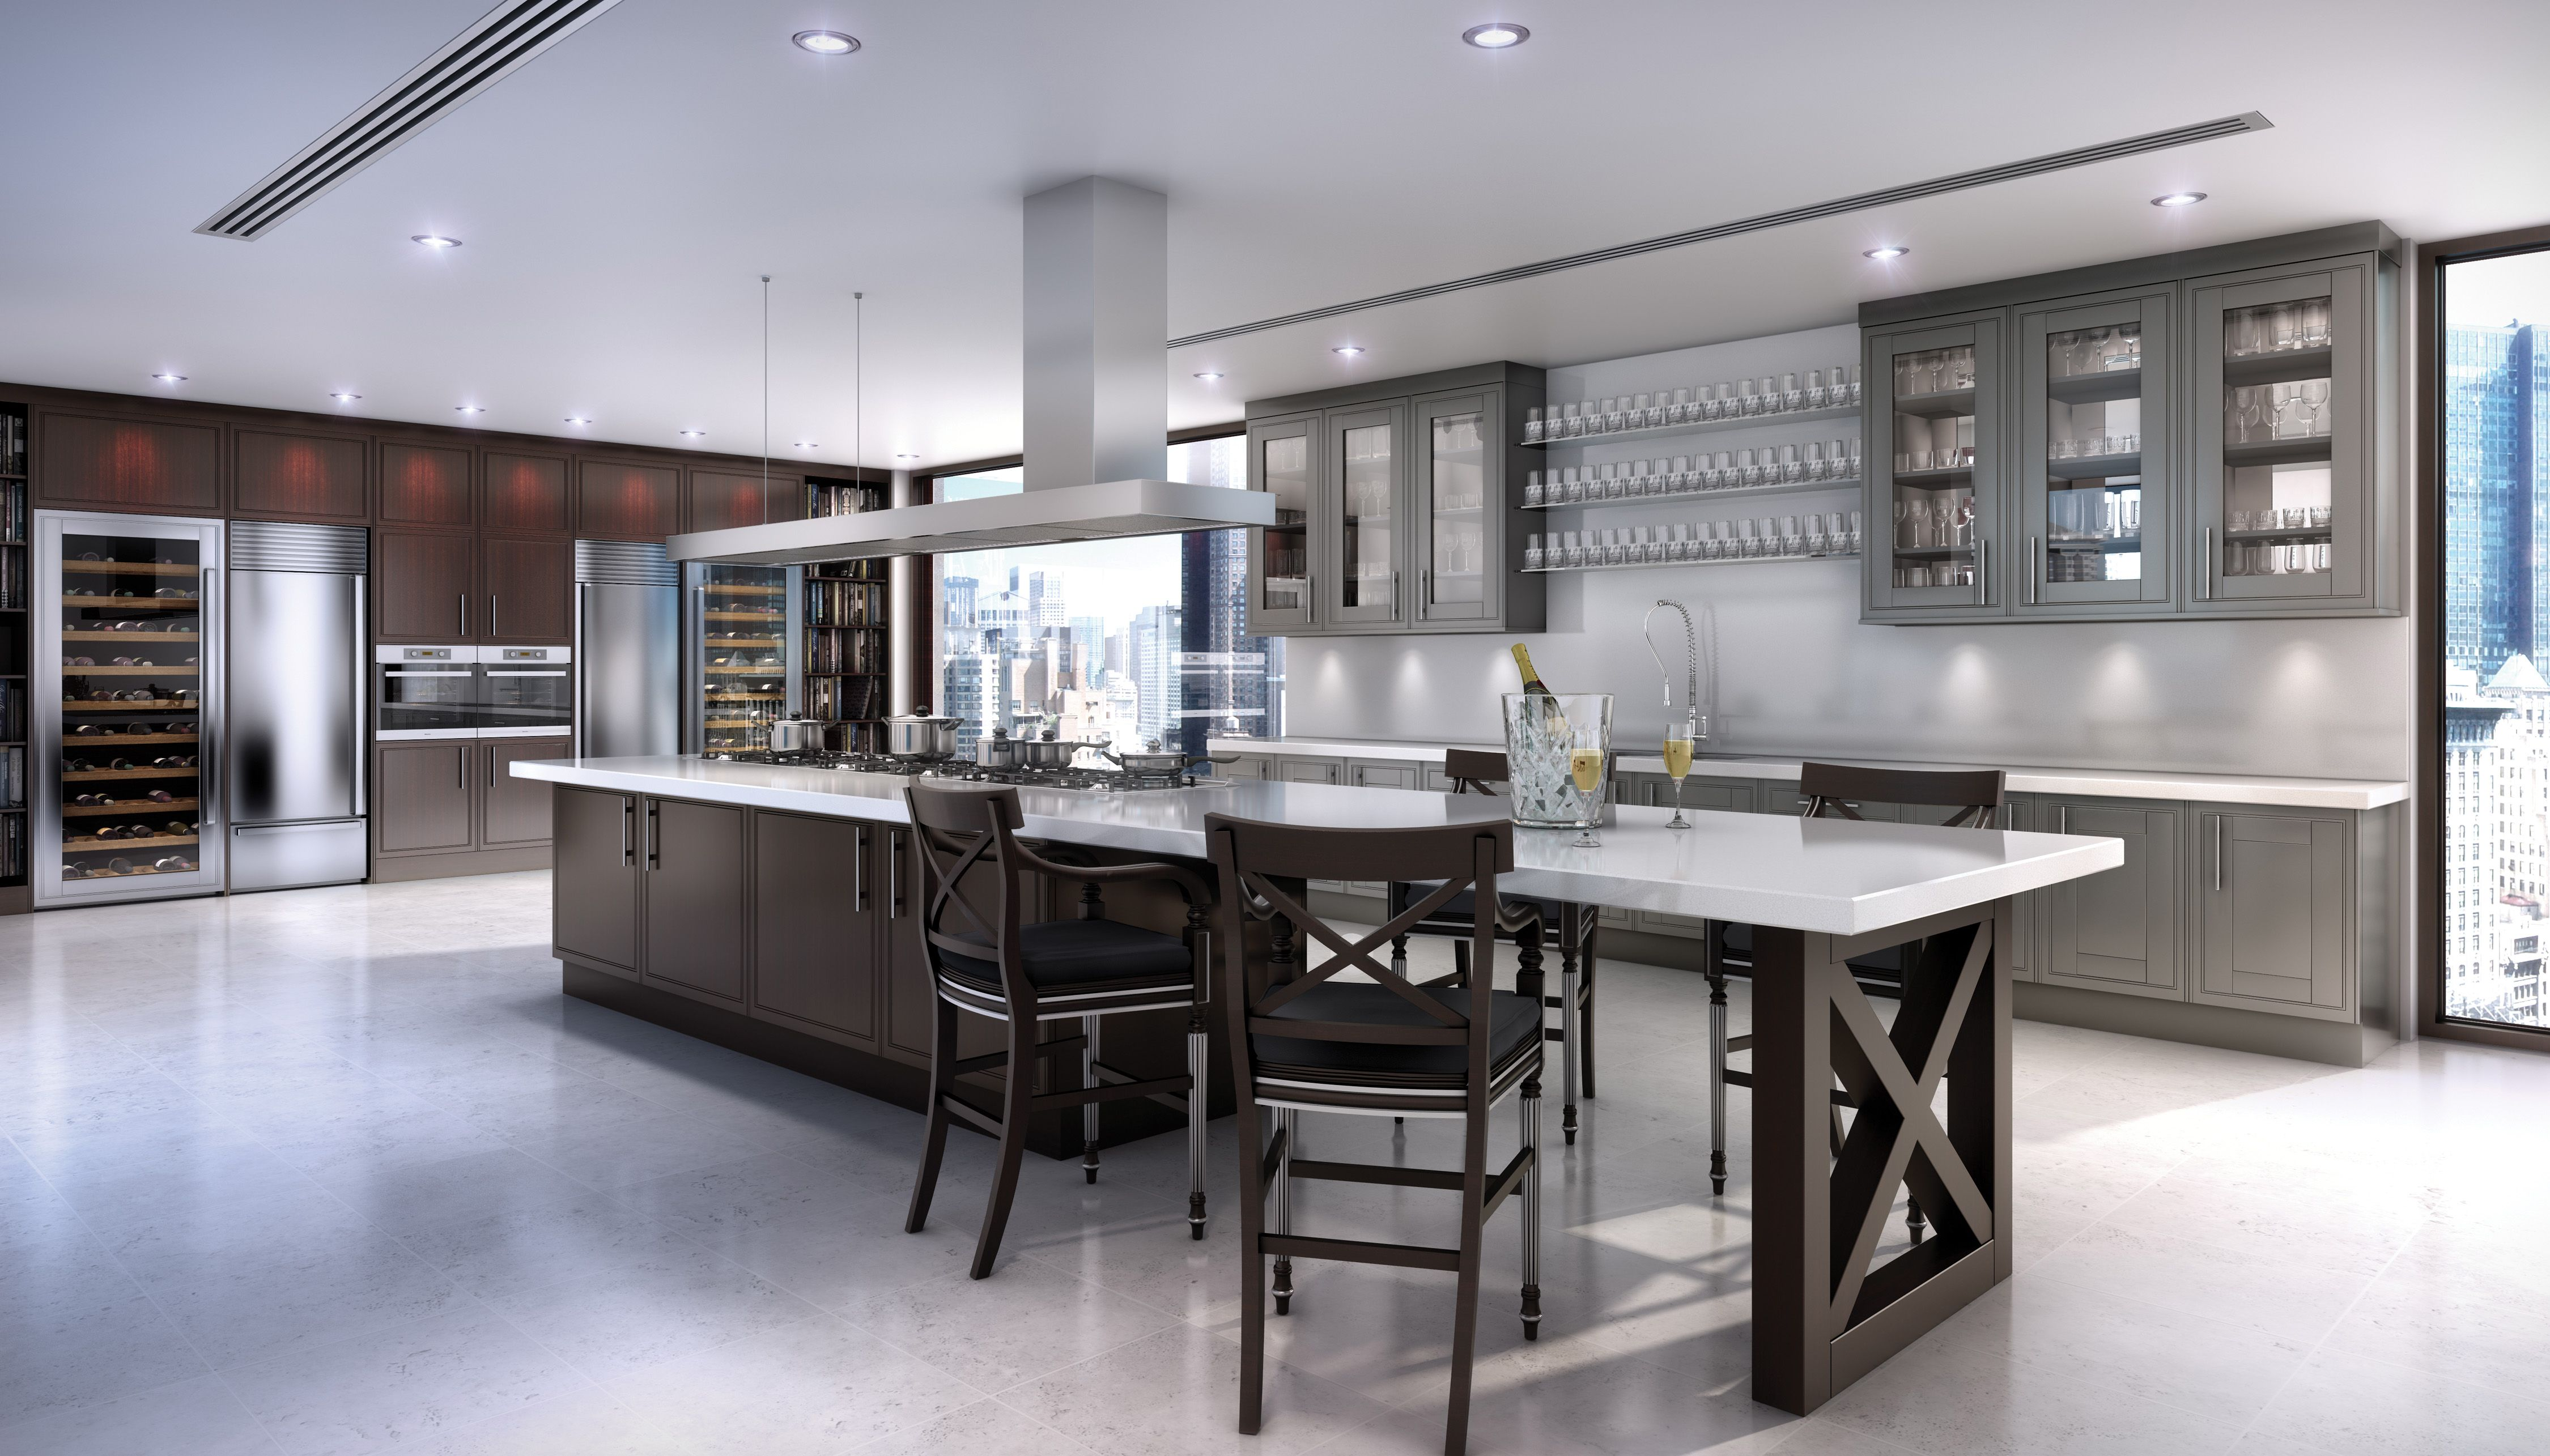 clive christian contemporary kitchen in walnut and grey photo weybridgeclivechristianinteriorscom - Clive Christian Kitchen Cabinets